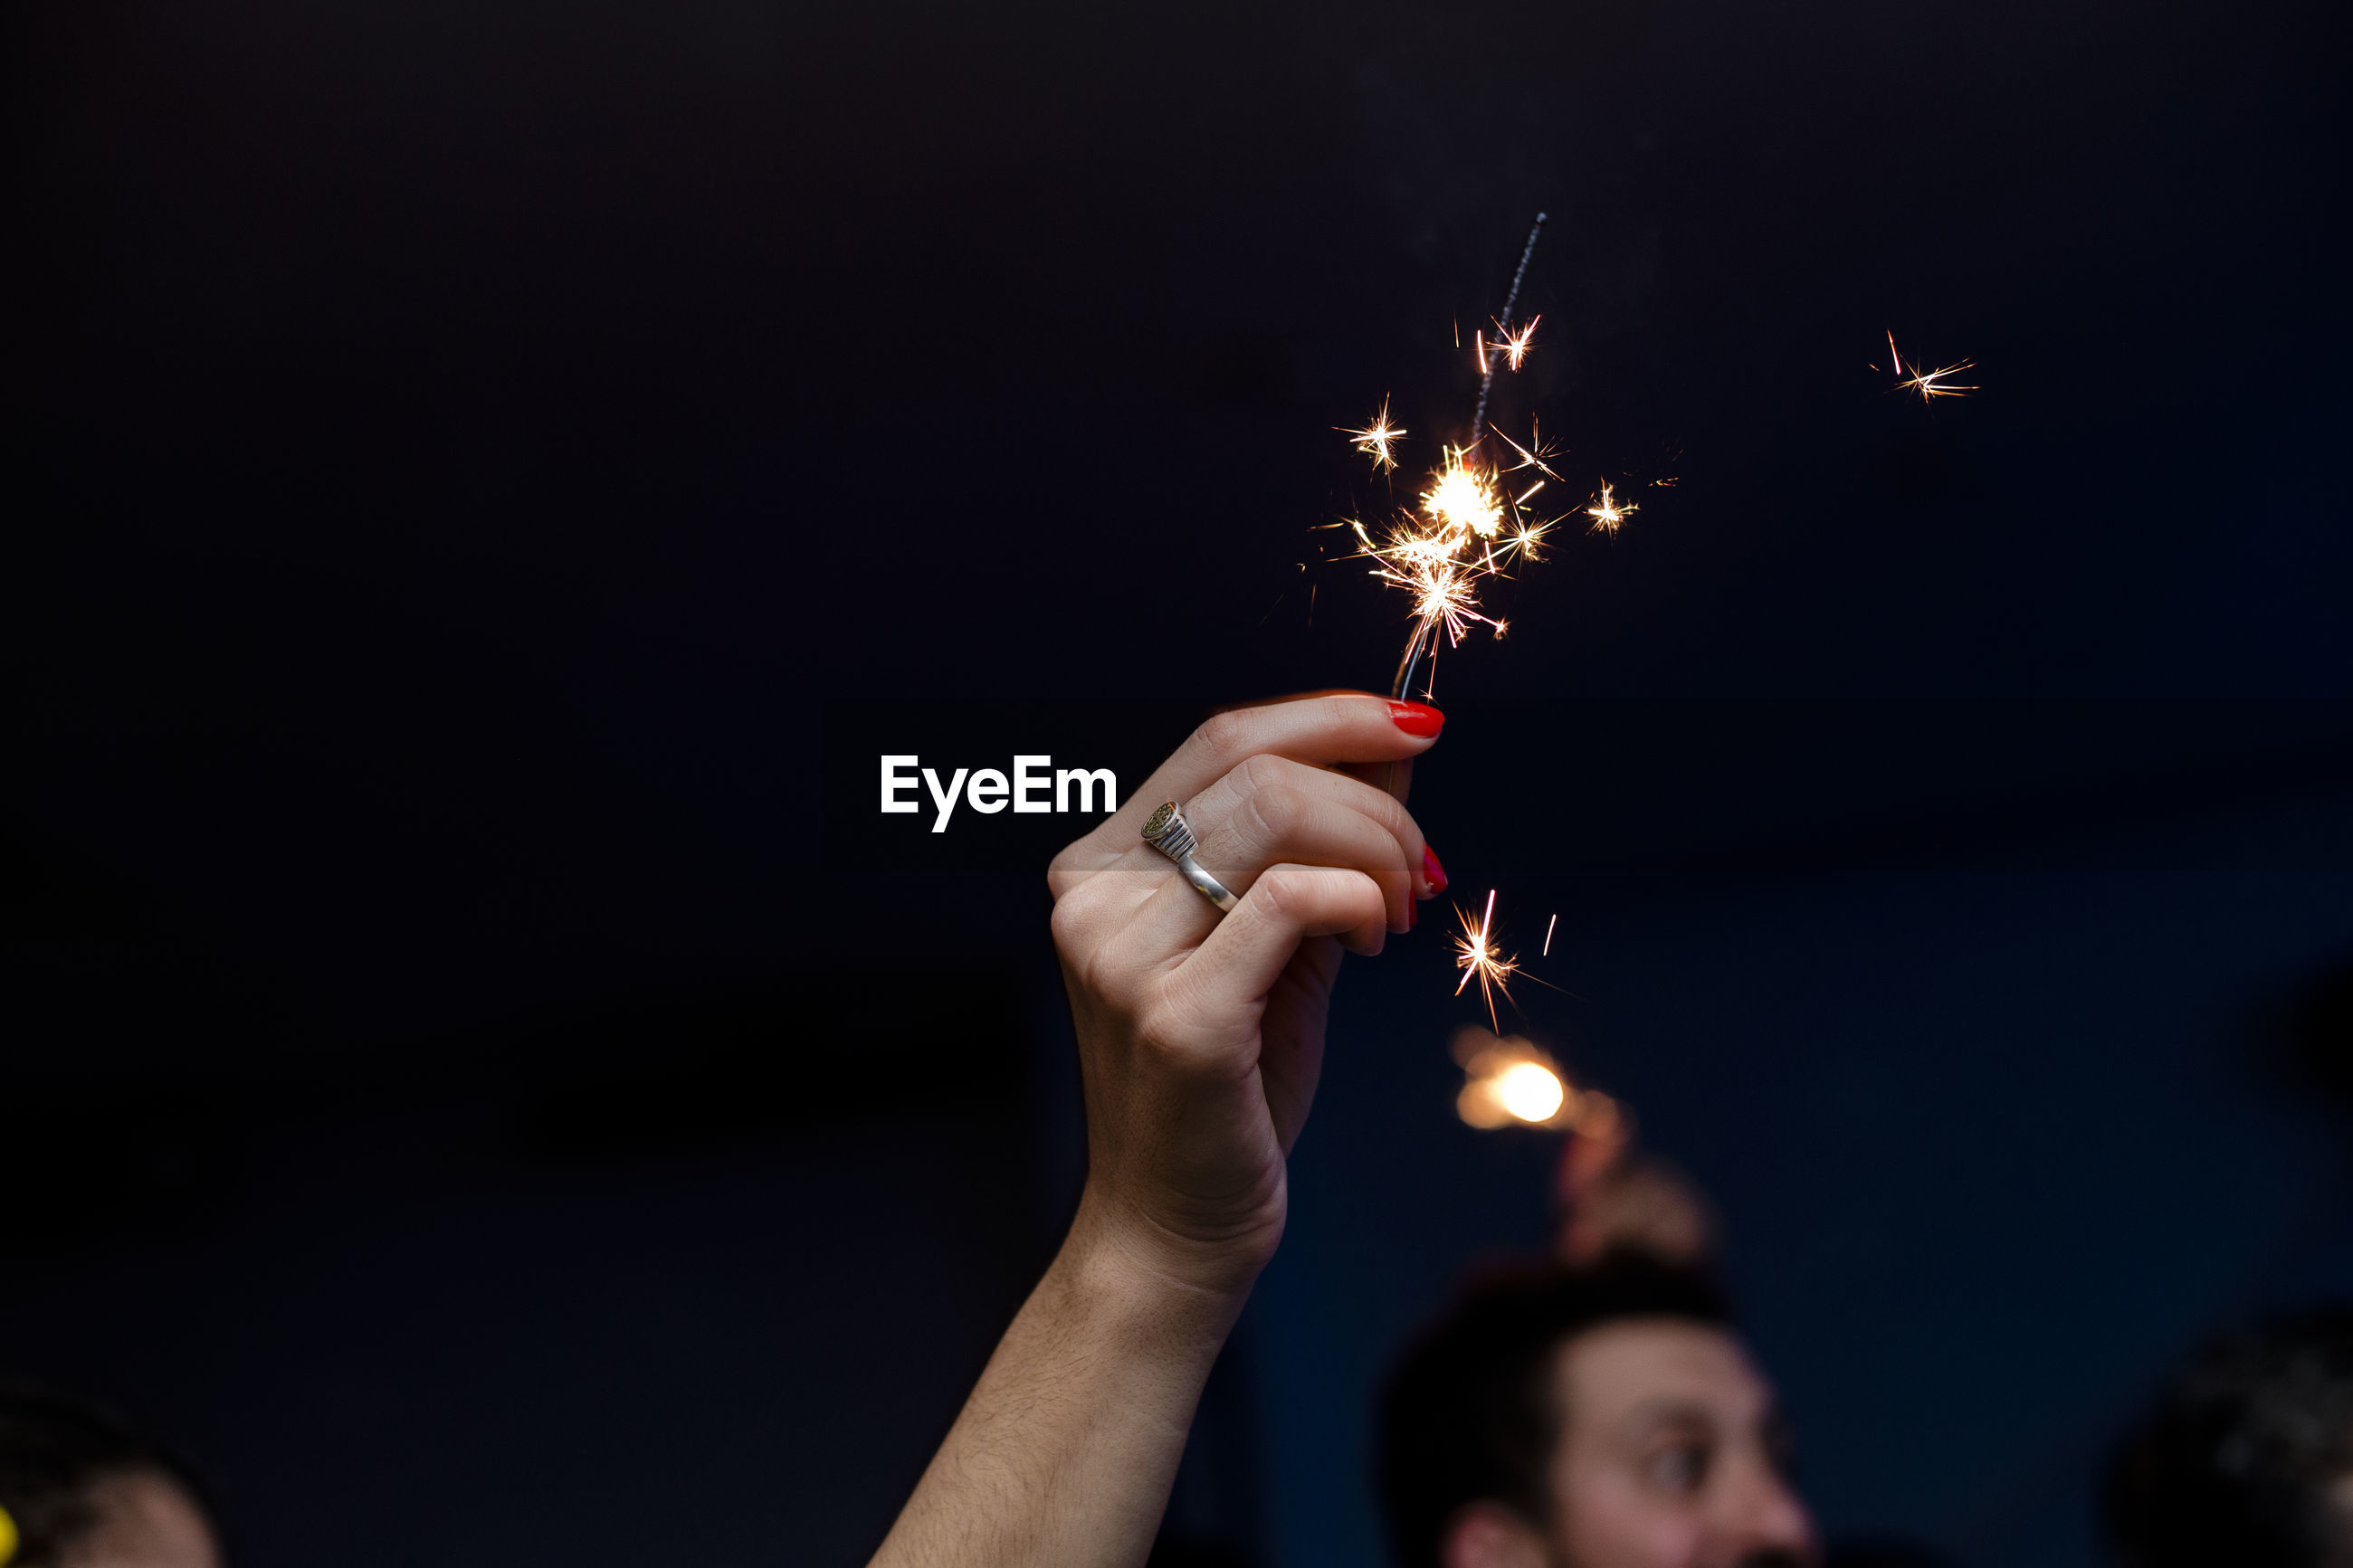 Cropped hand of woman holding lit sparkler at night